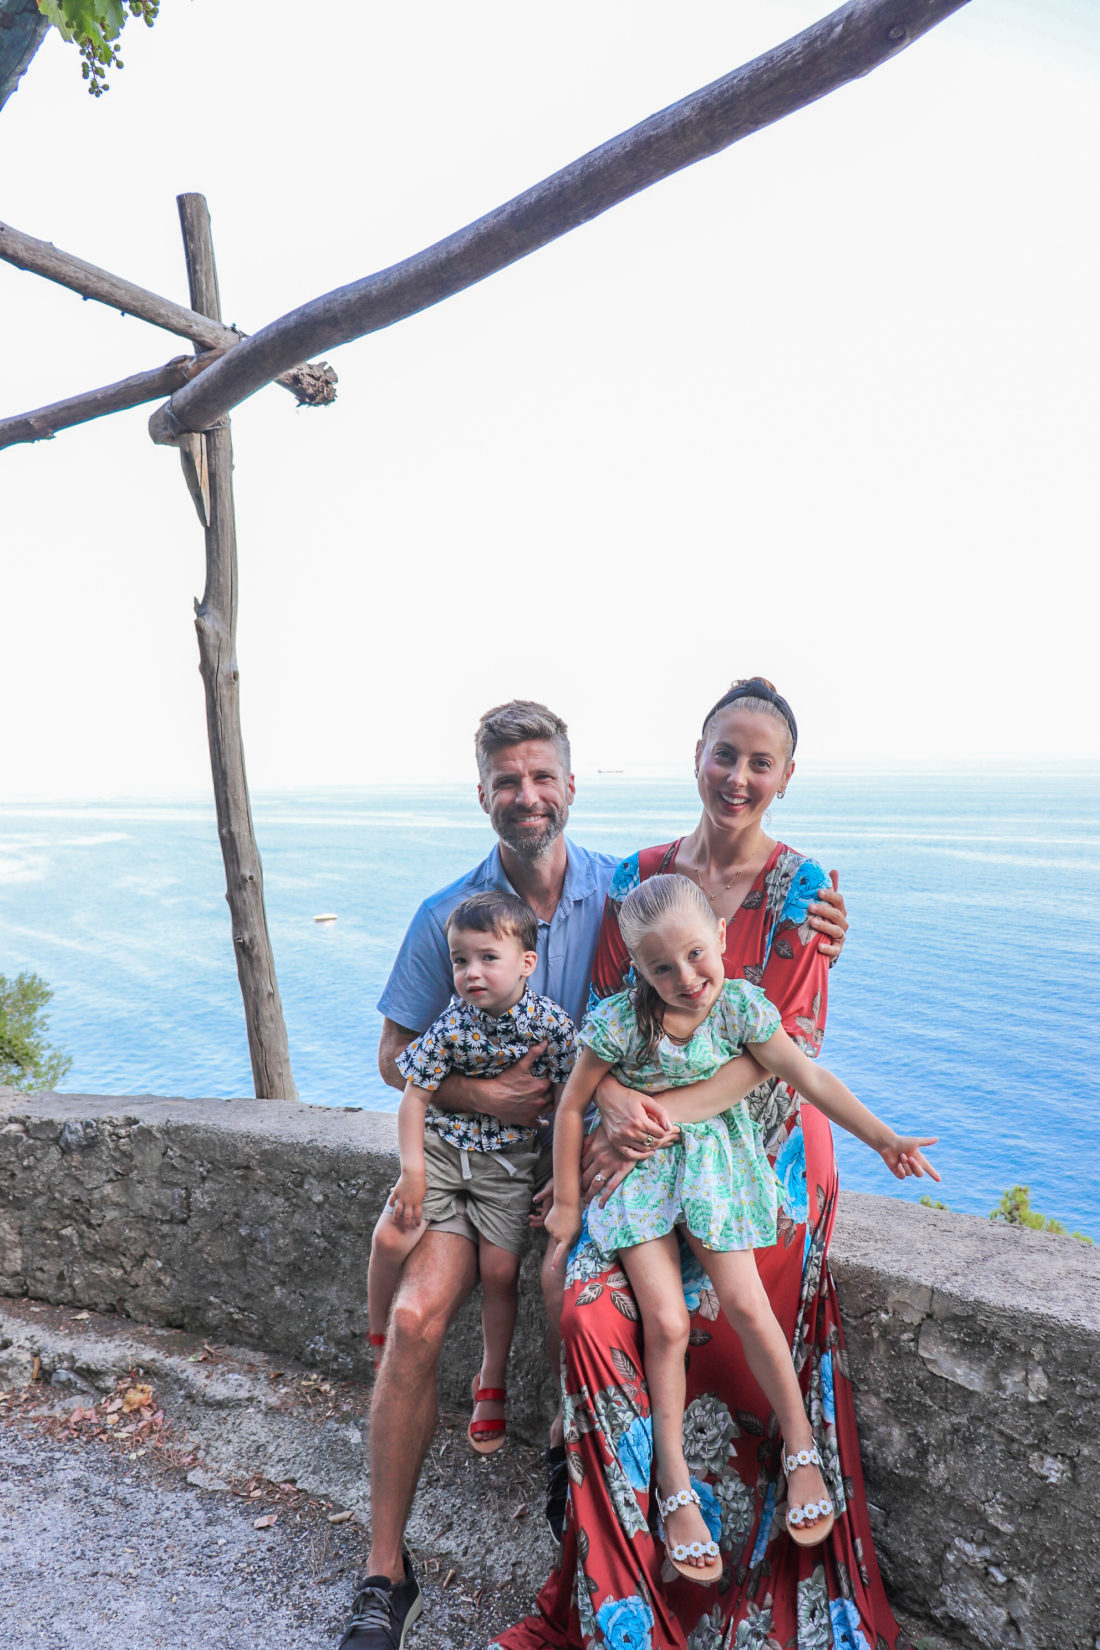 Eva Amurri Martino and husband Kyle with their children Marlowe and Major in Italy